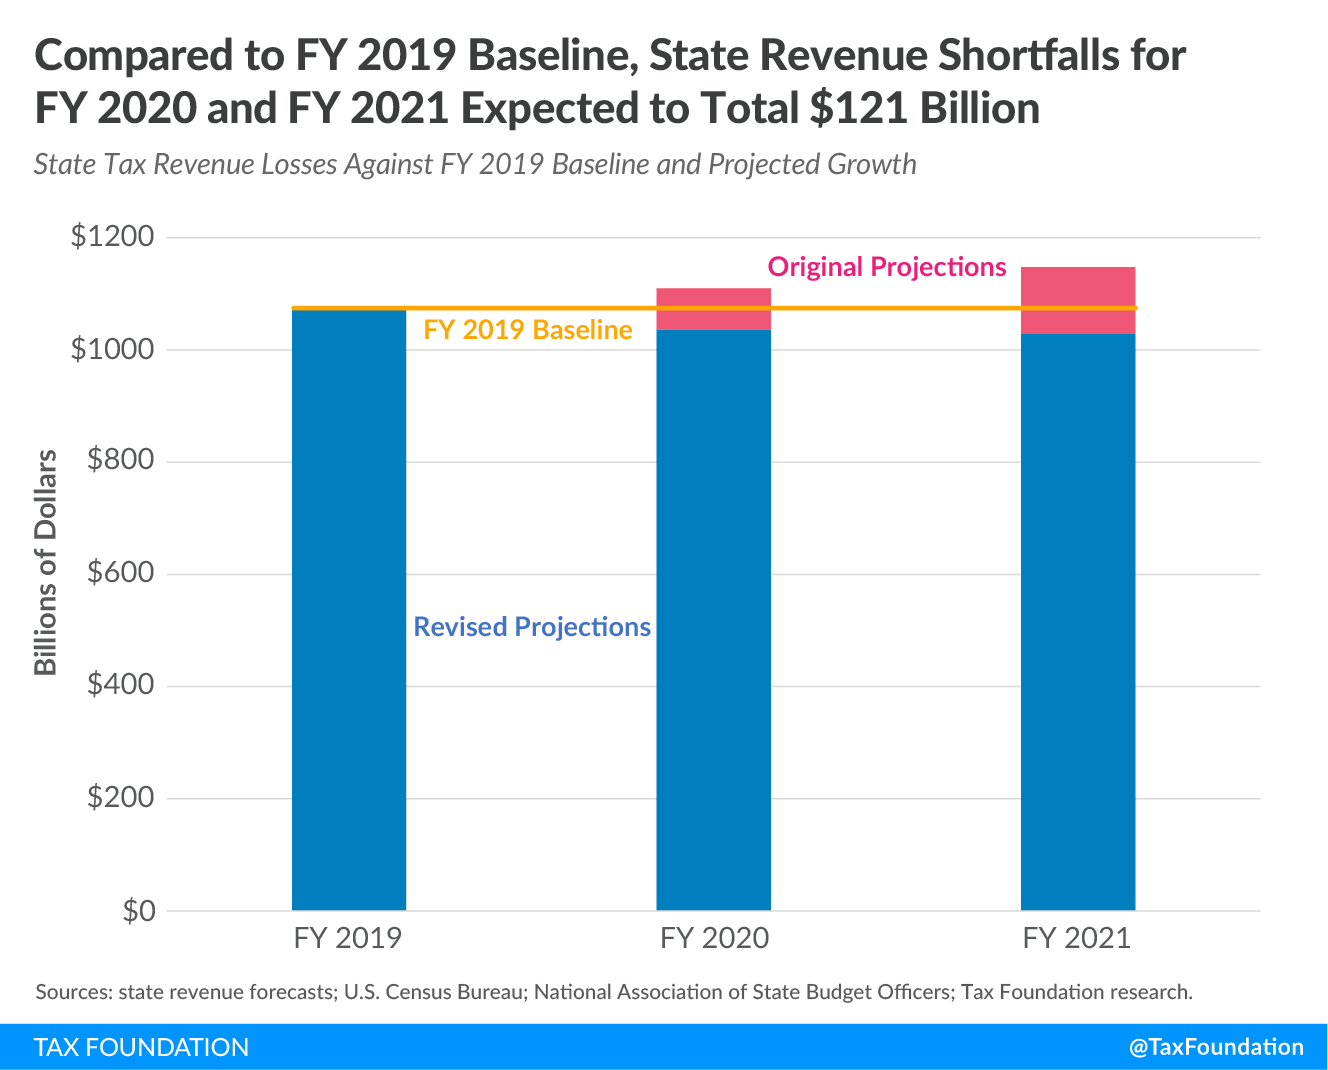 state revenue forecasts, state budget forecasts, projected state revenue losses